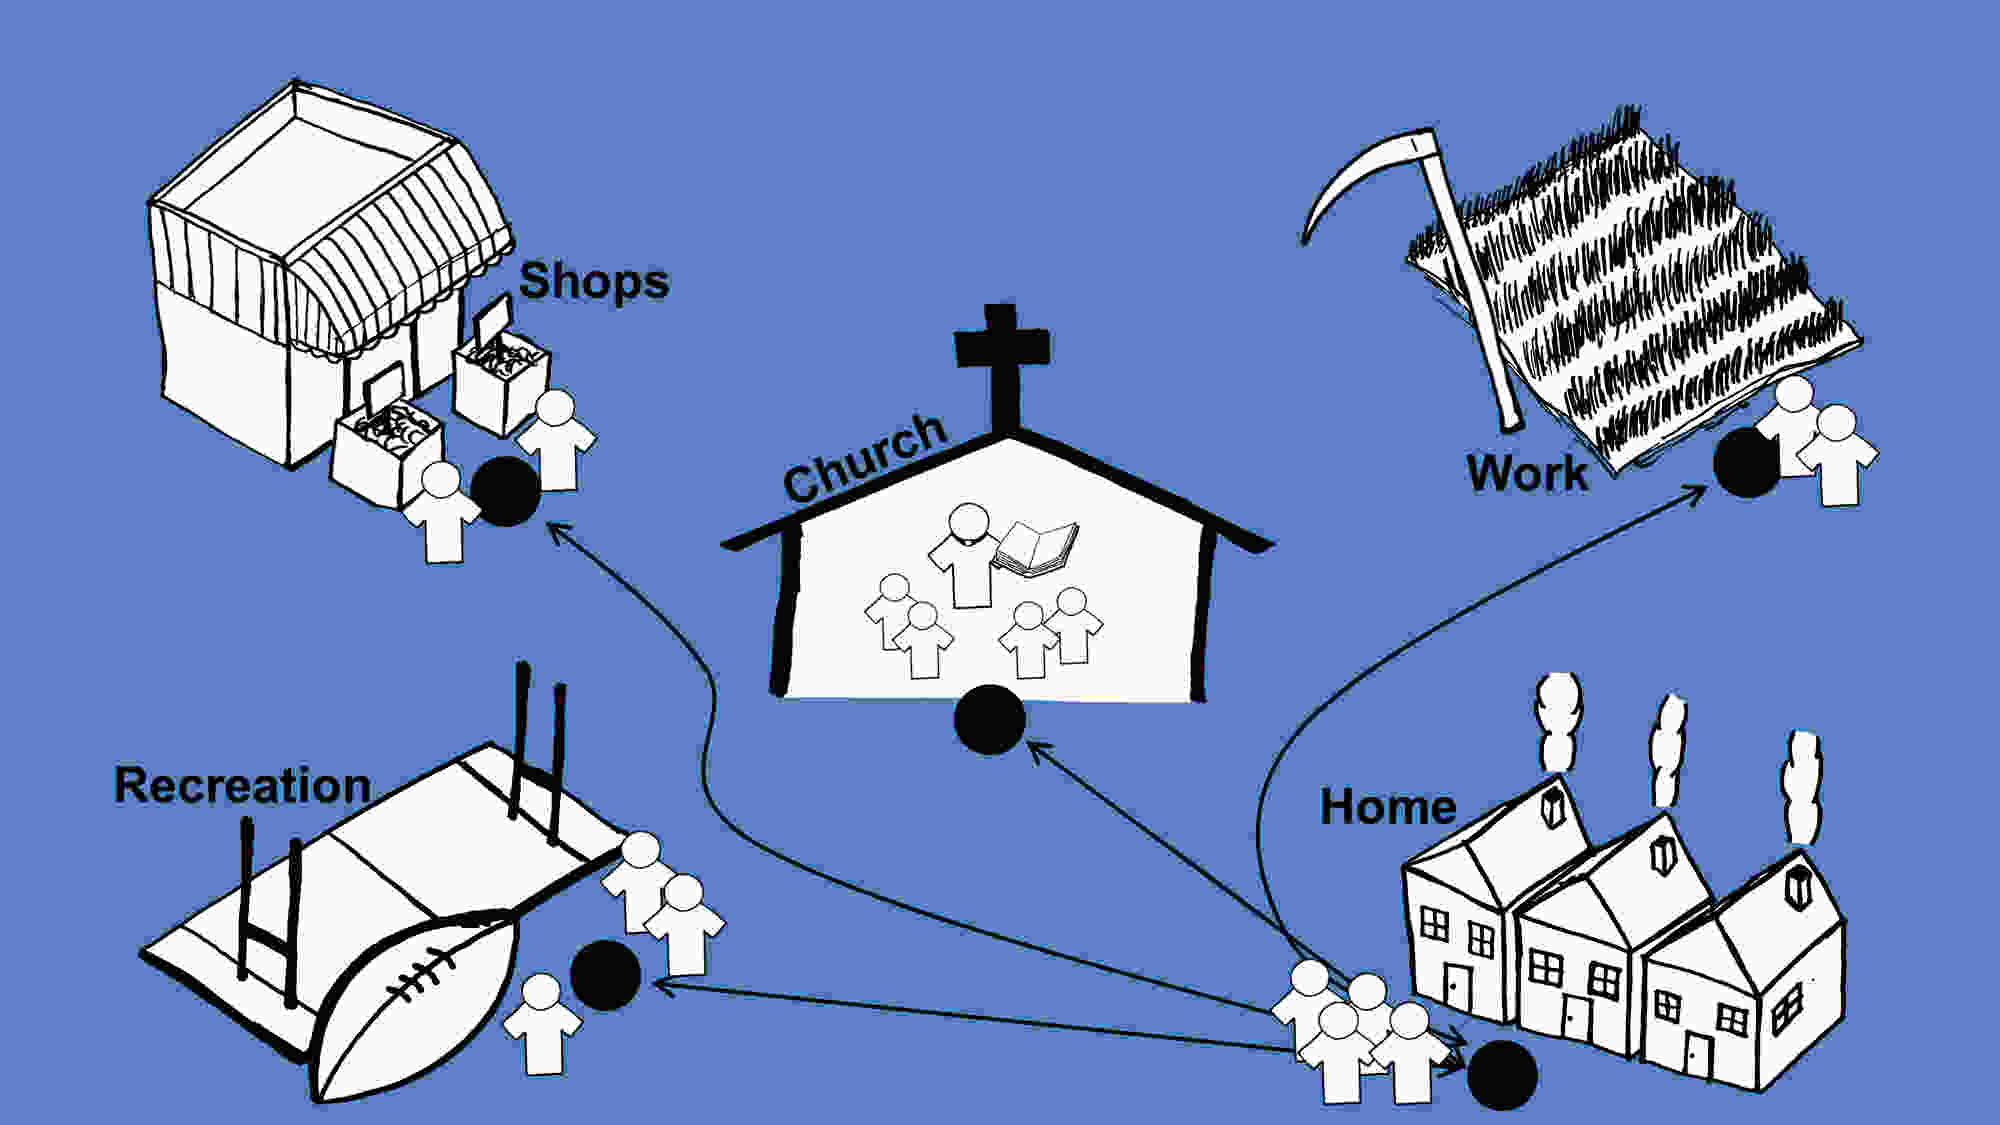 Figure 1. The Village Network of the Past